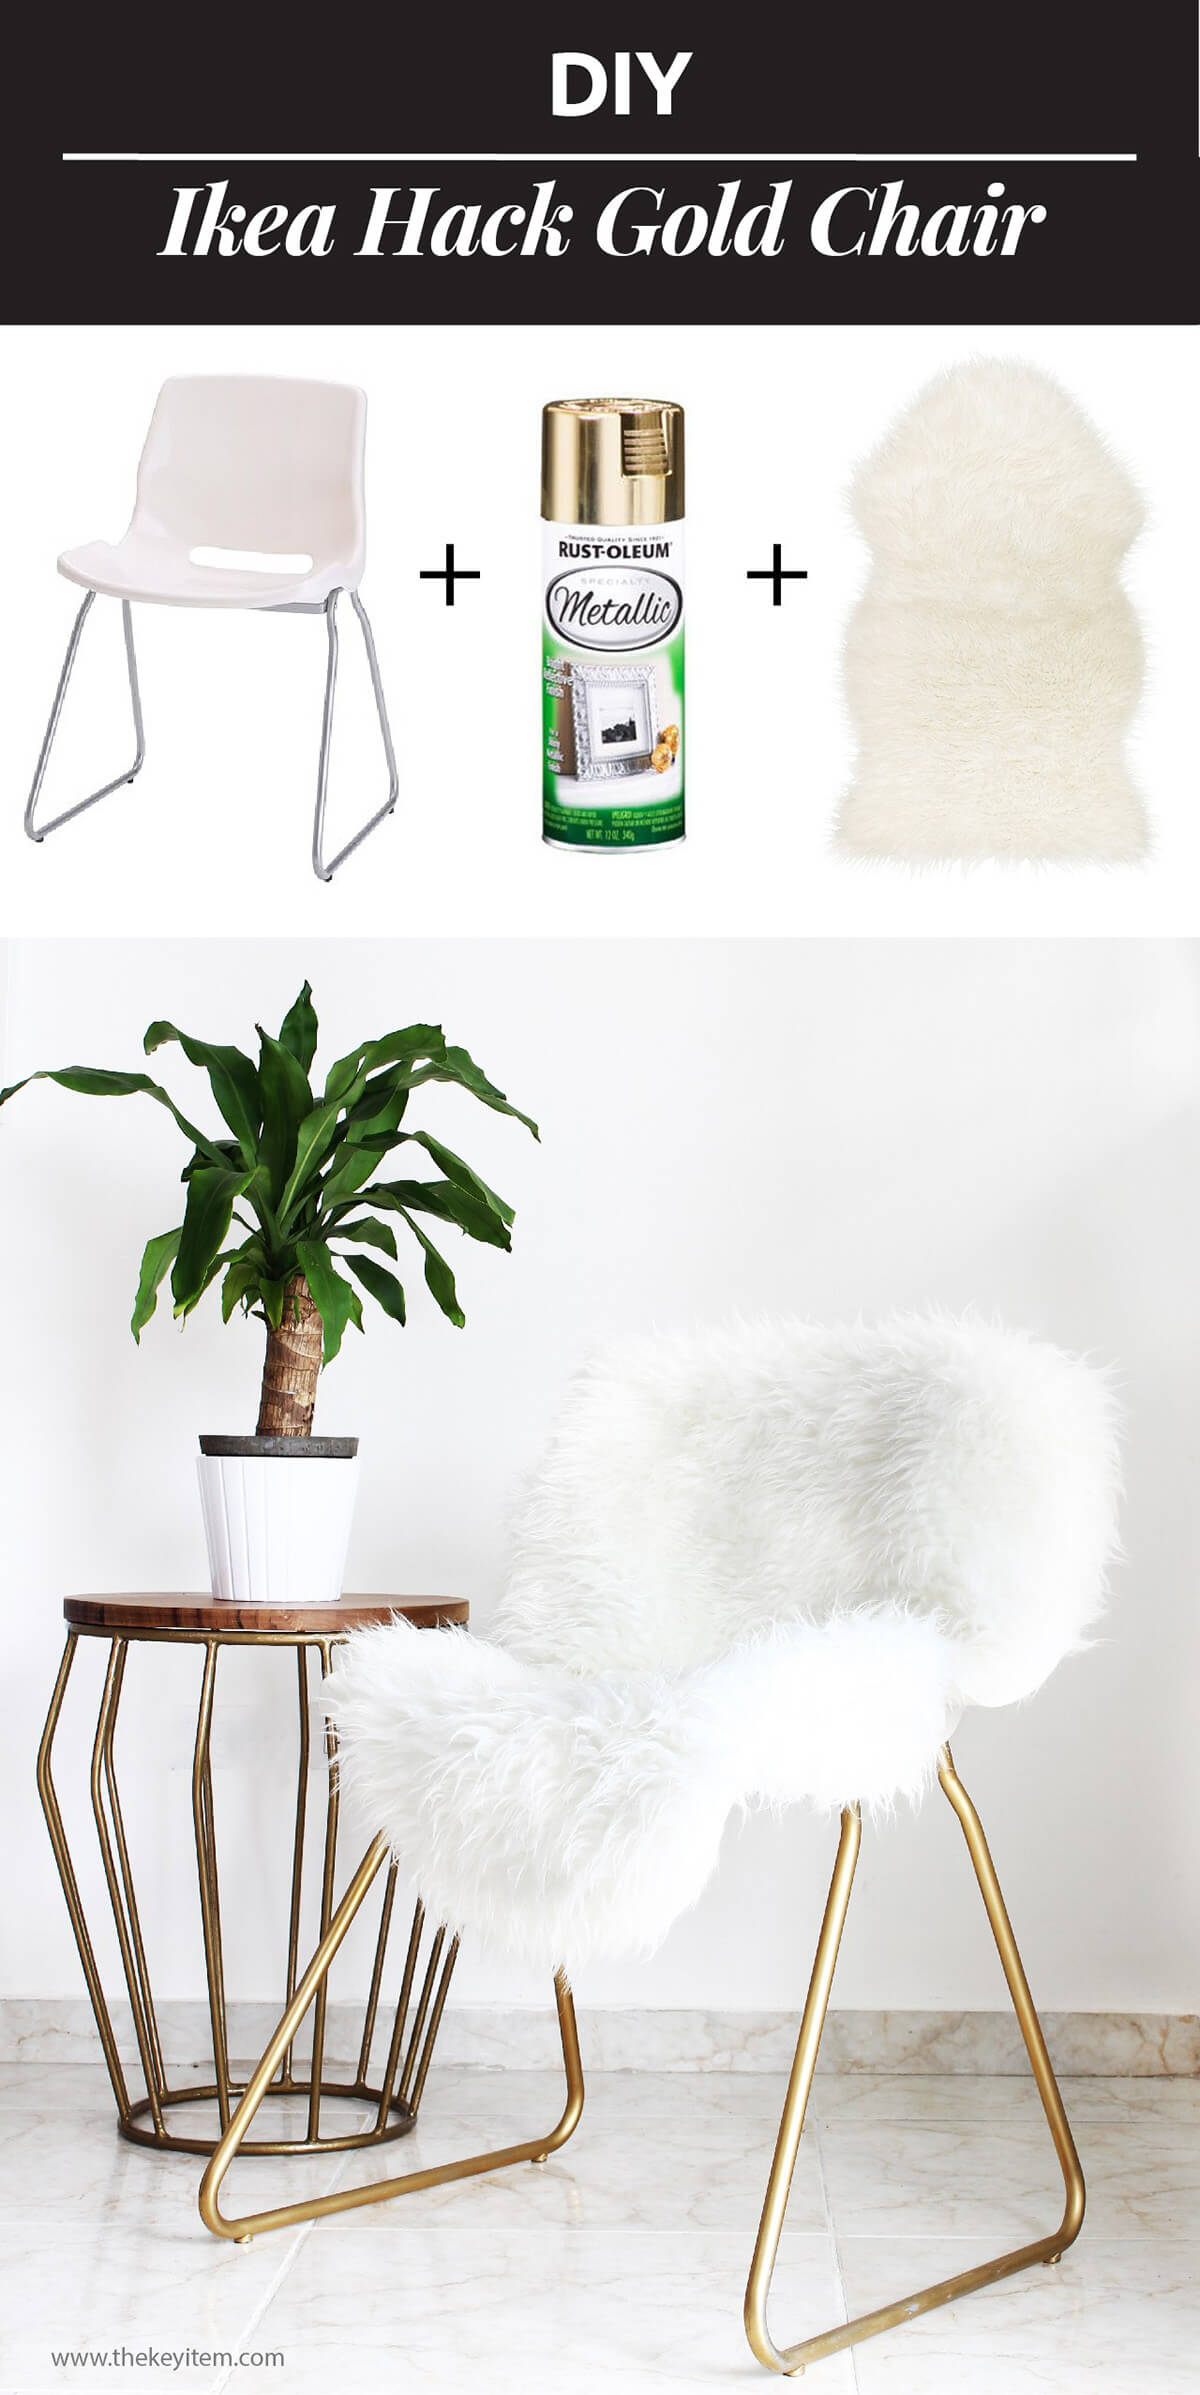 25 Best Home Decor Hacks Ideas And Projects For 2020